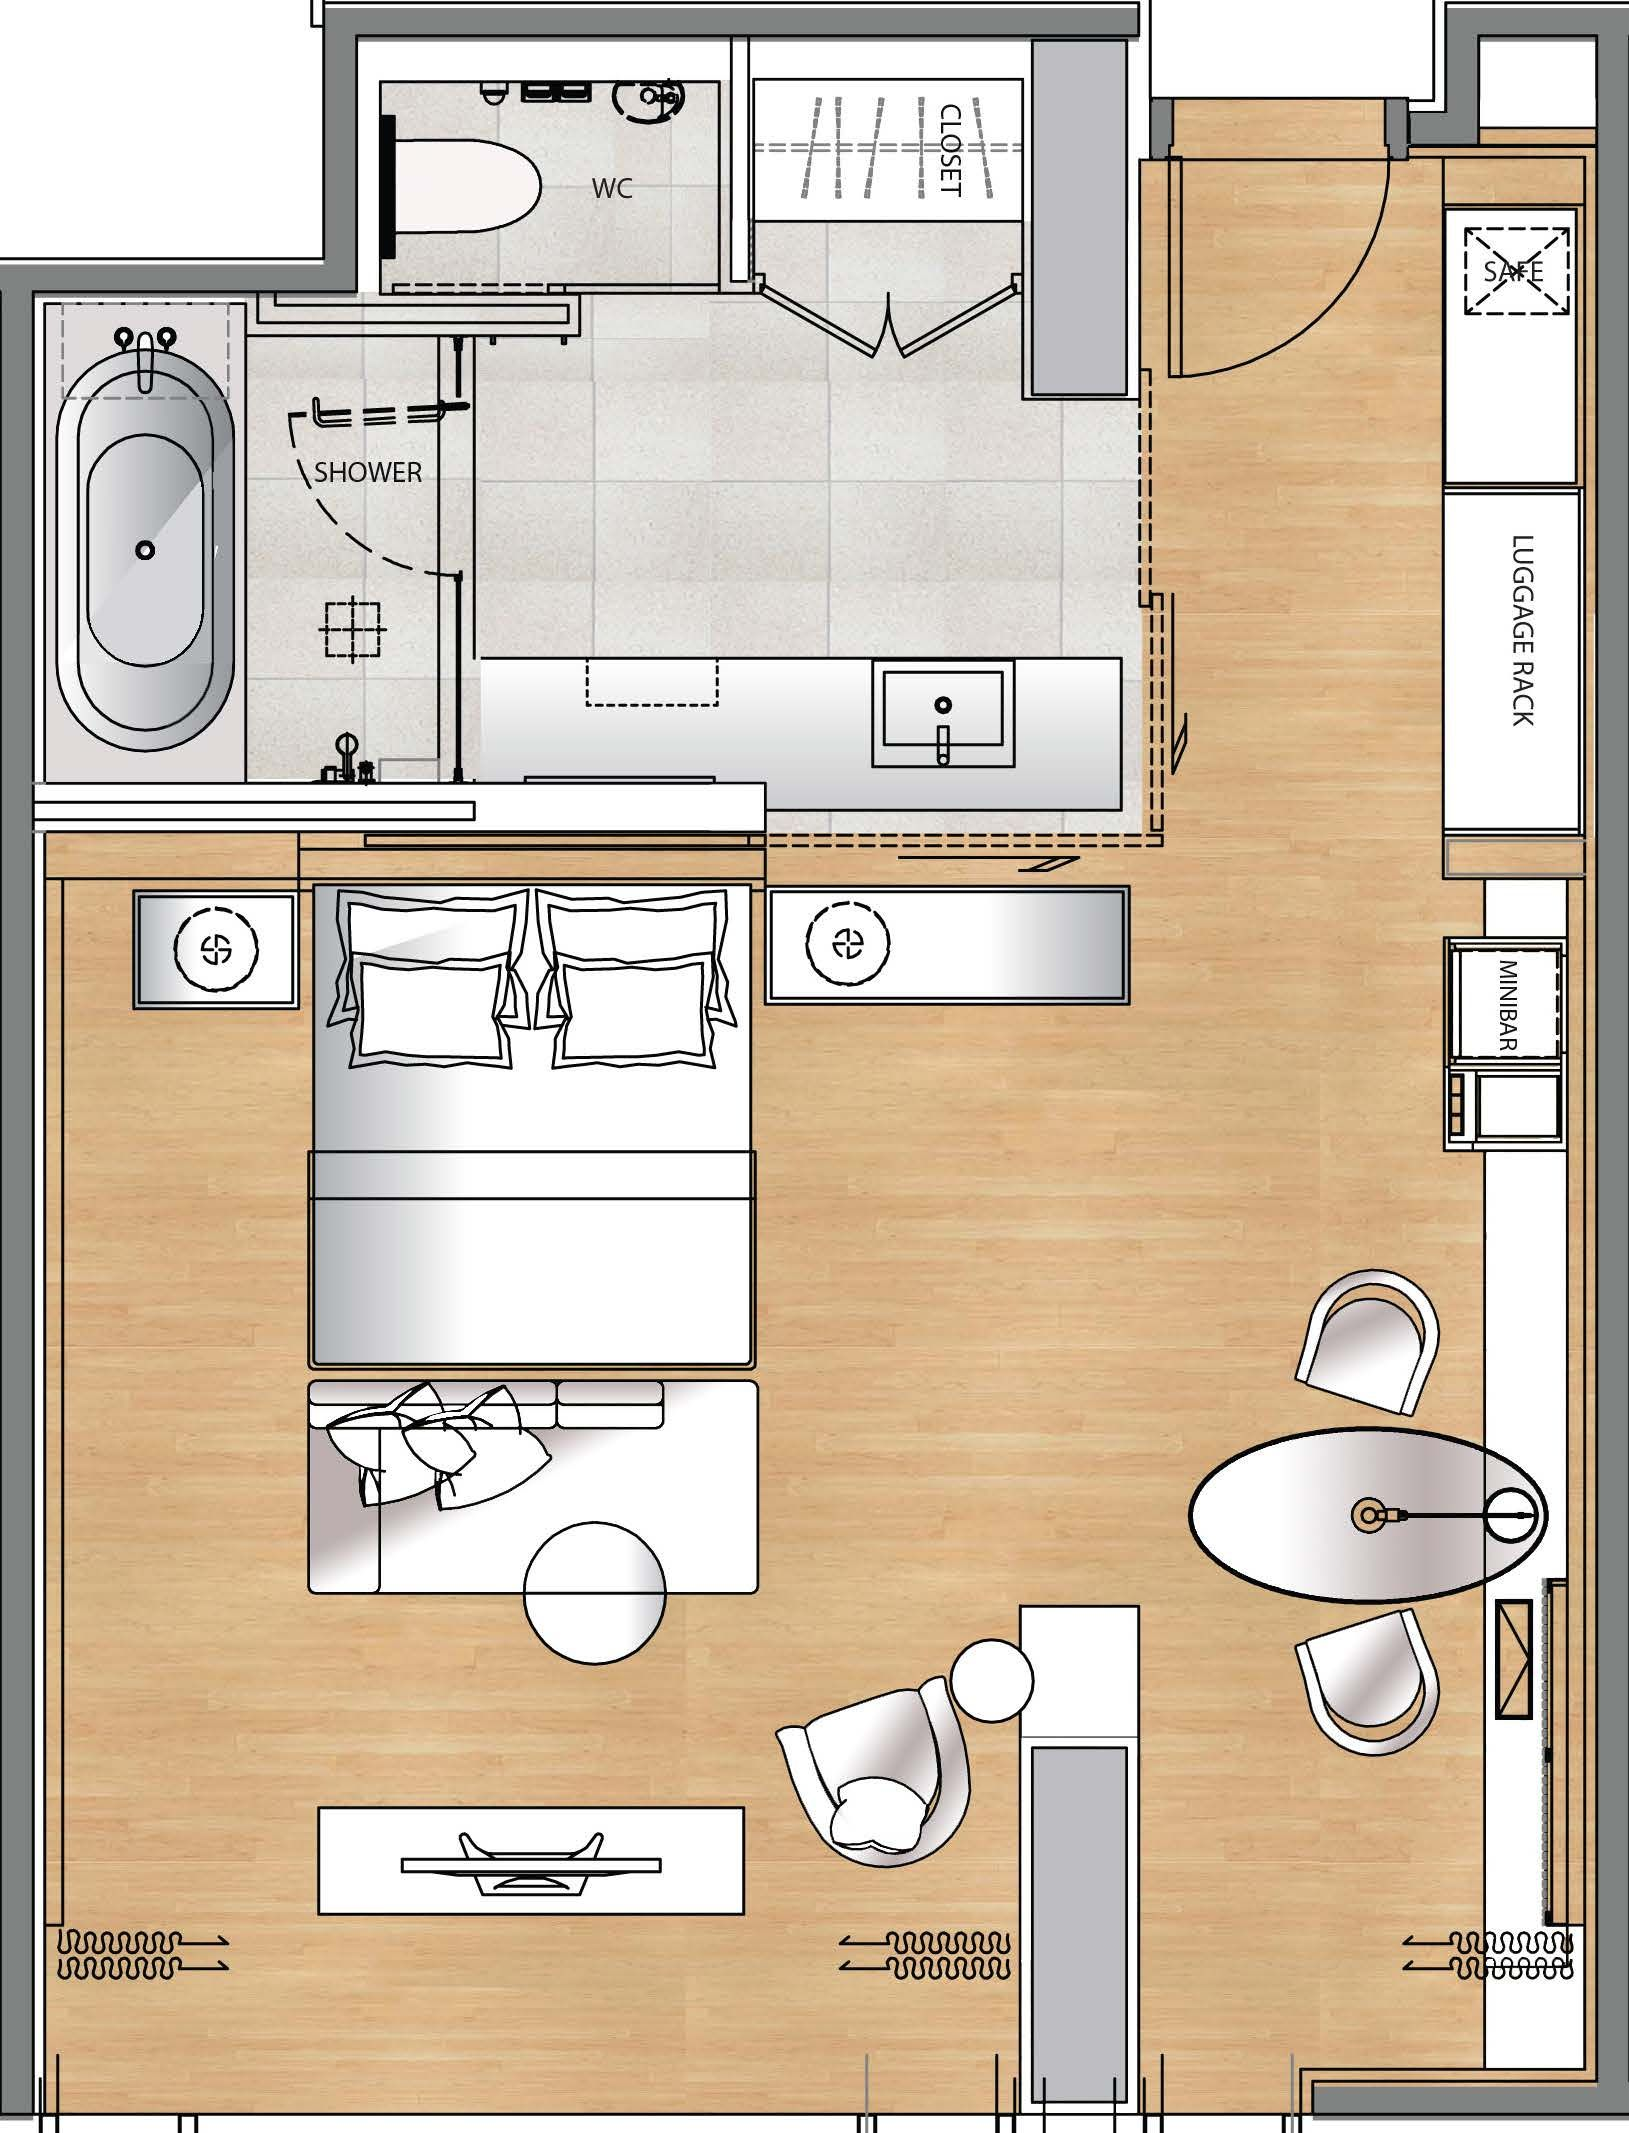 Plan Chambre Hotel Hotel Gym Floor Plan Google Search Hotel Rooms